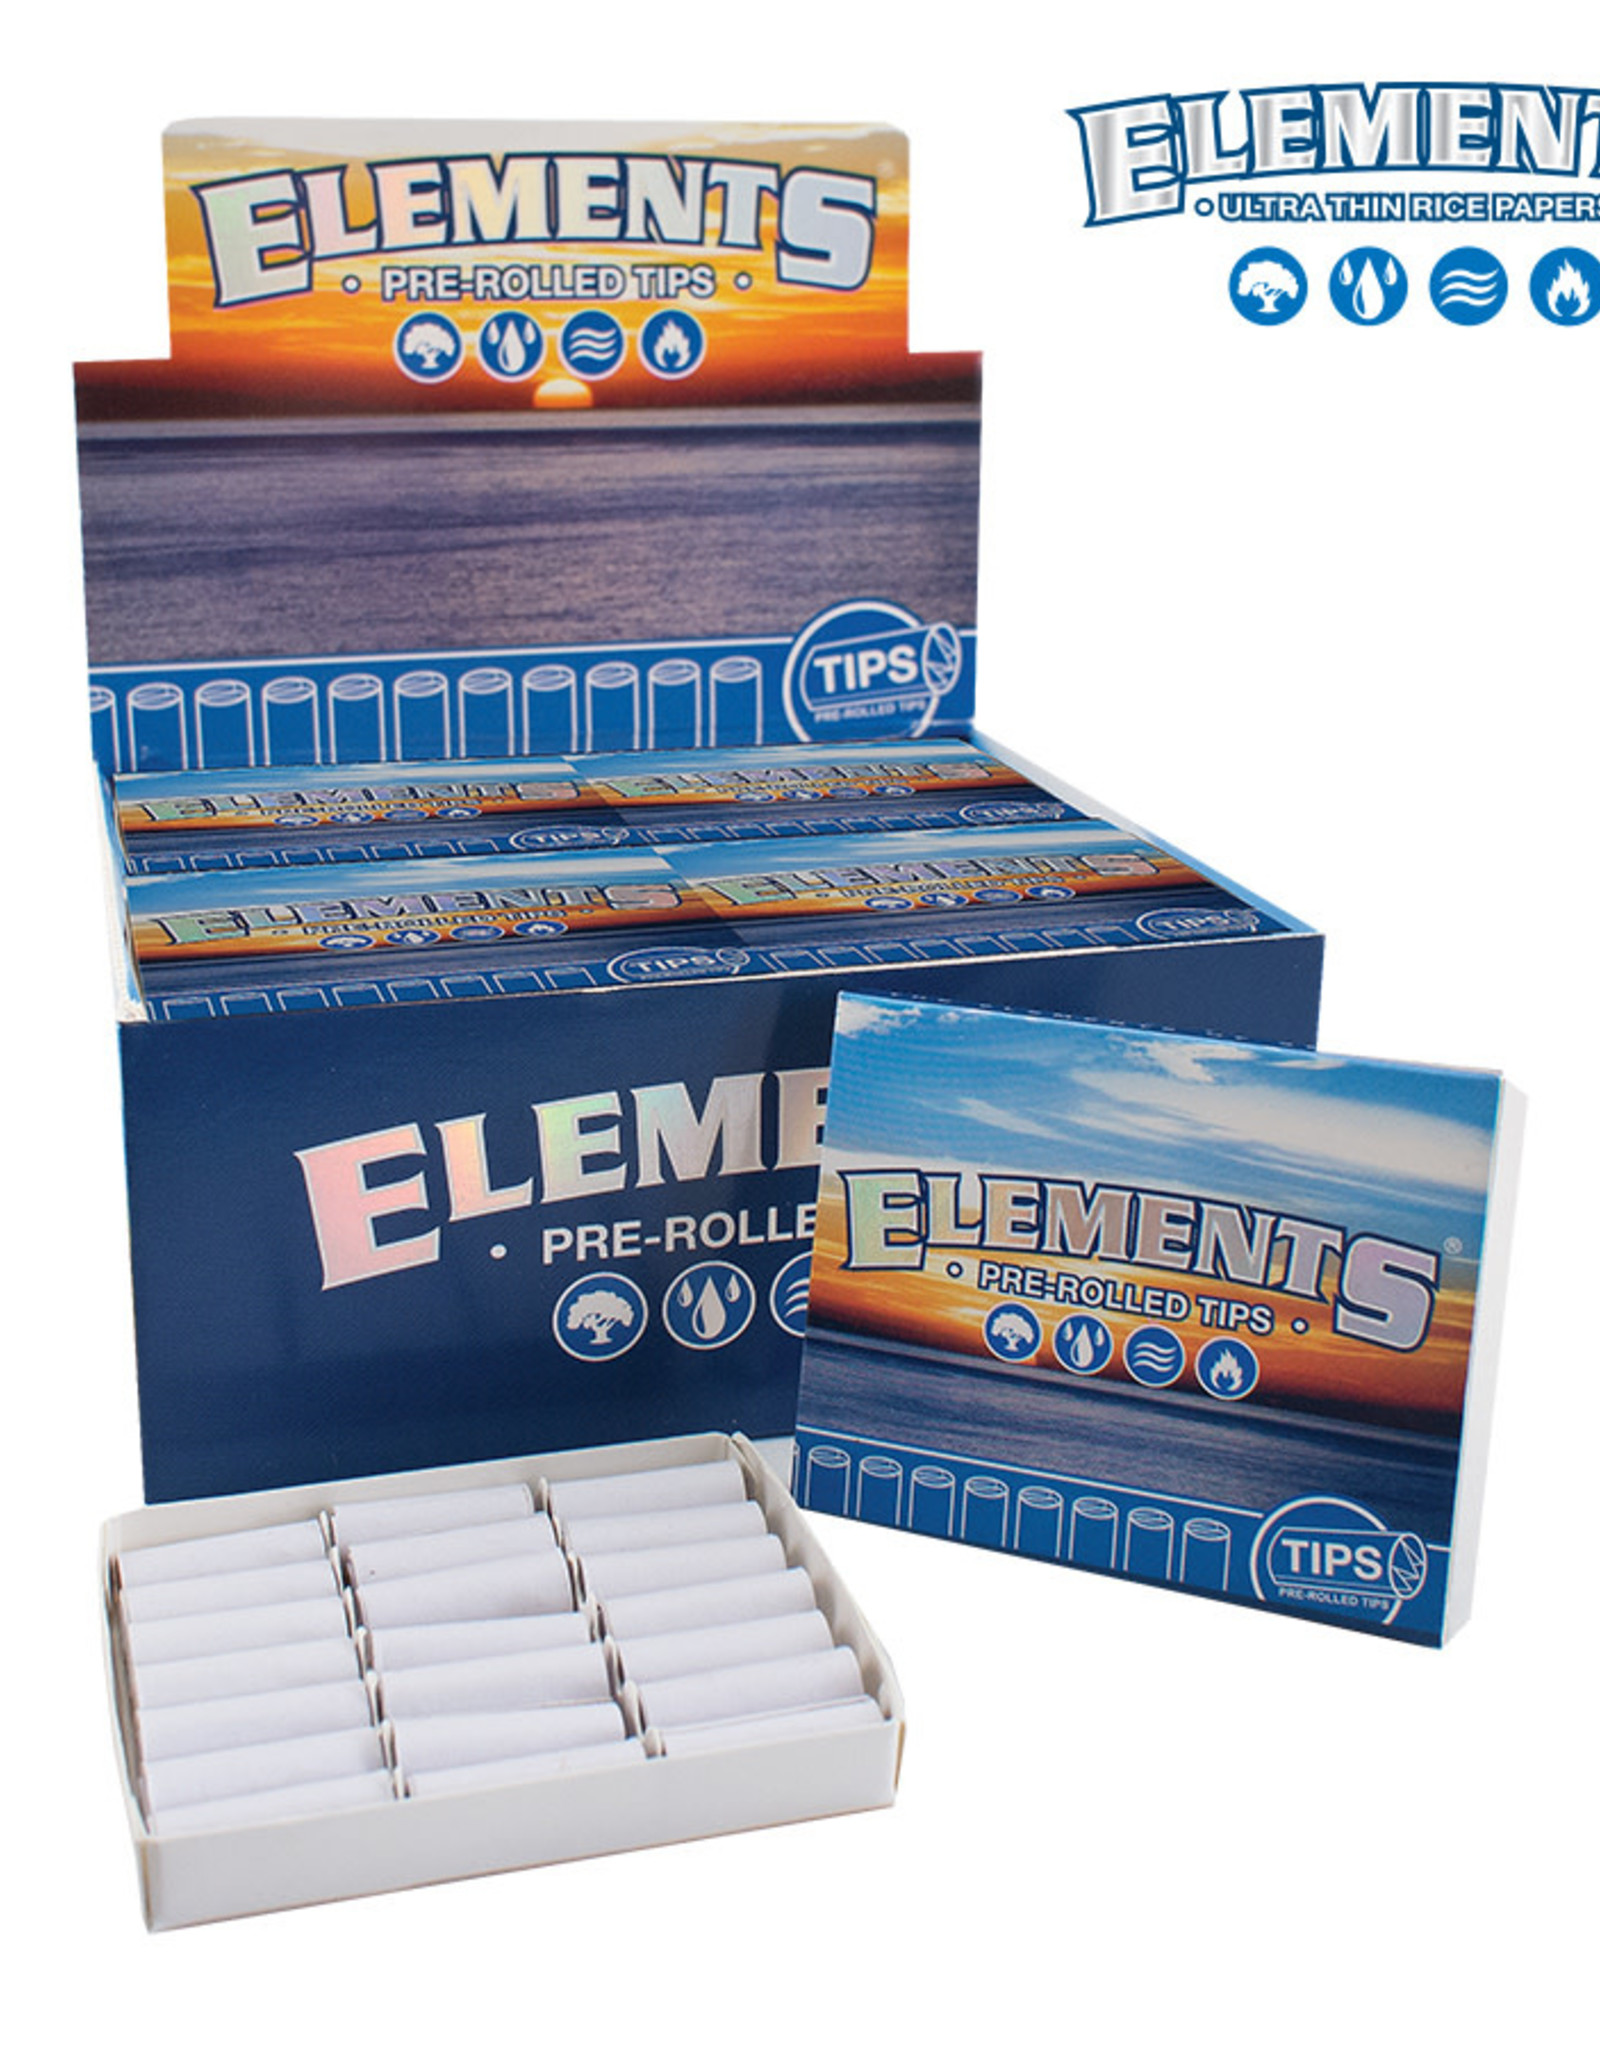 Elements Elements pre rolled tips